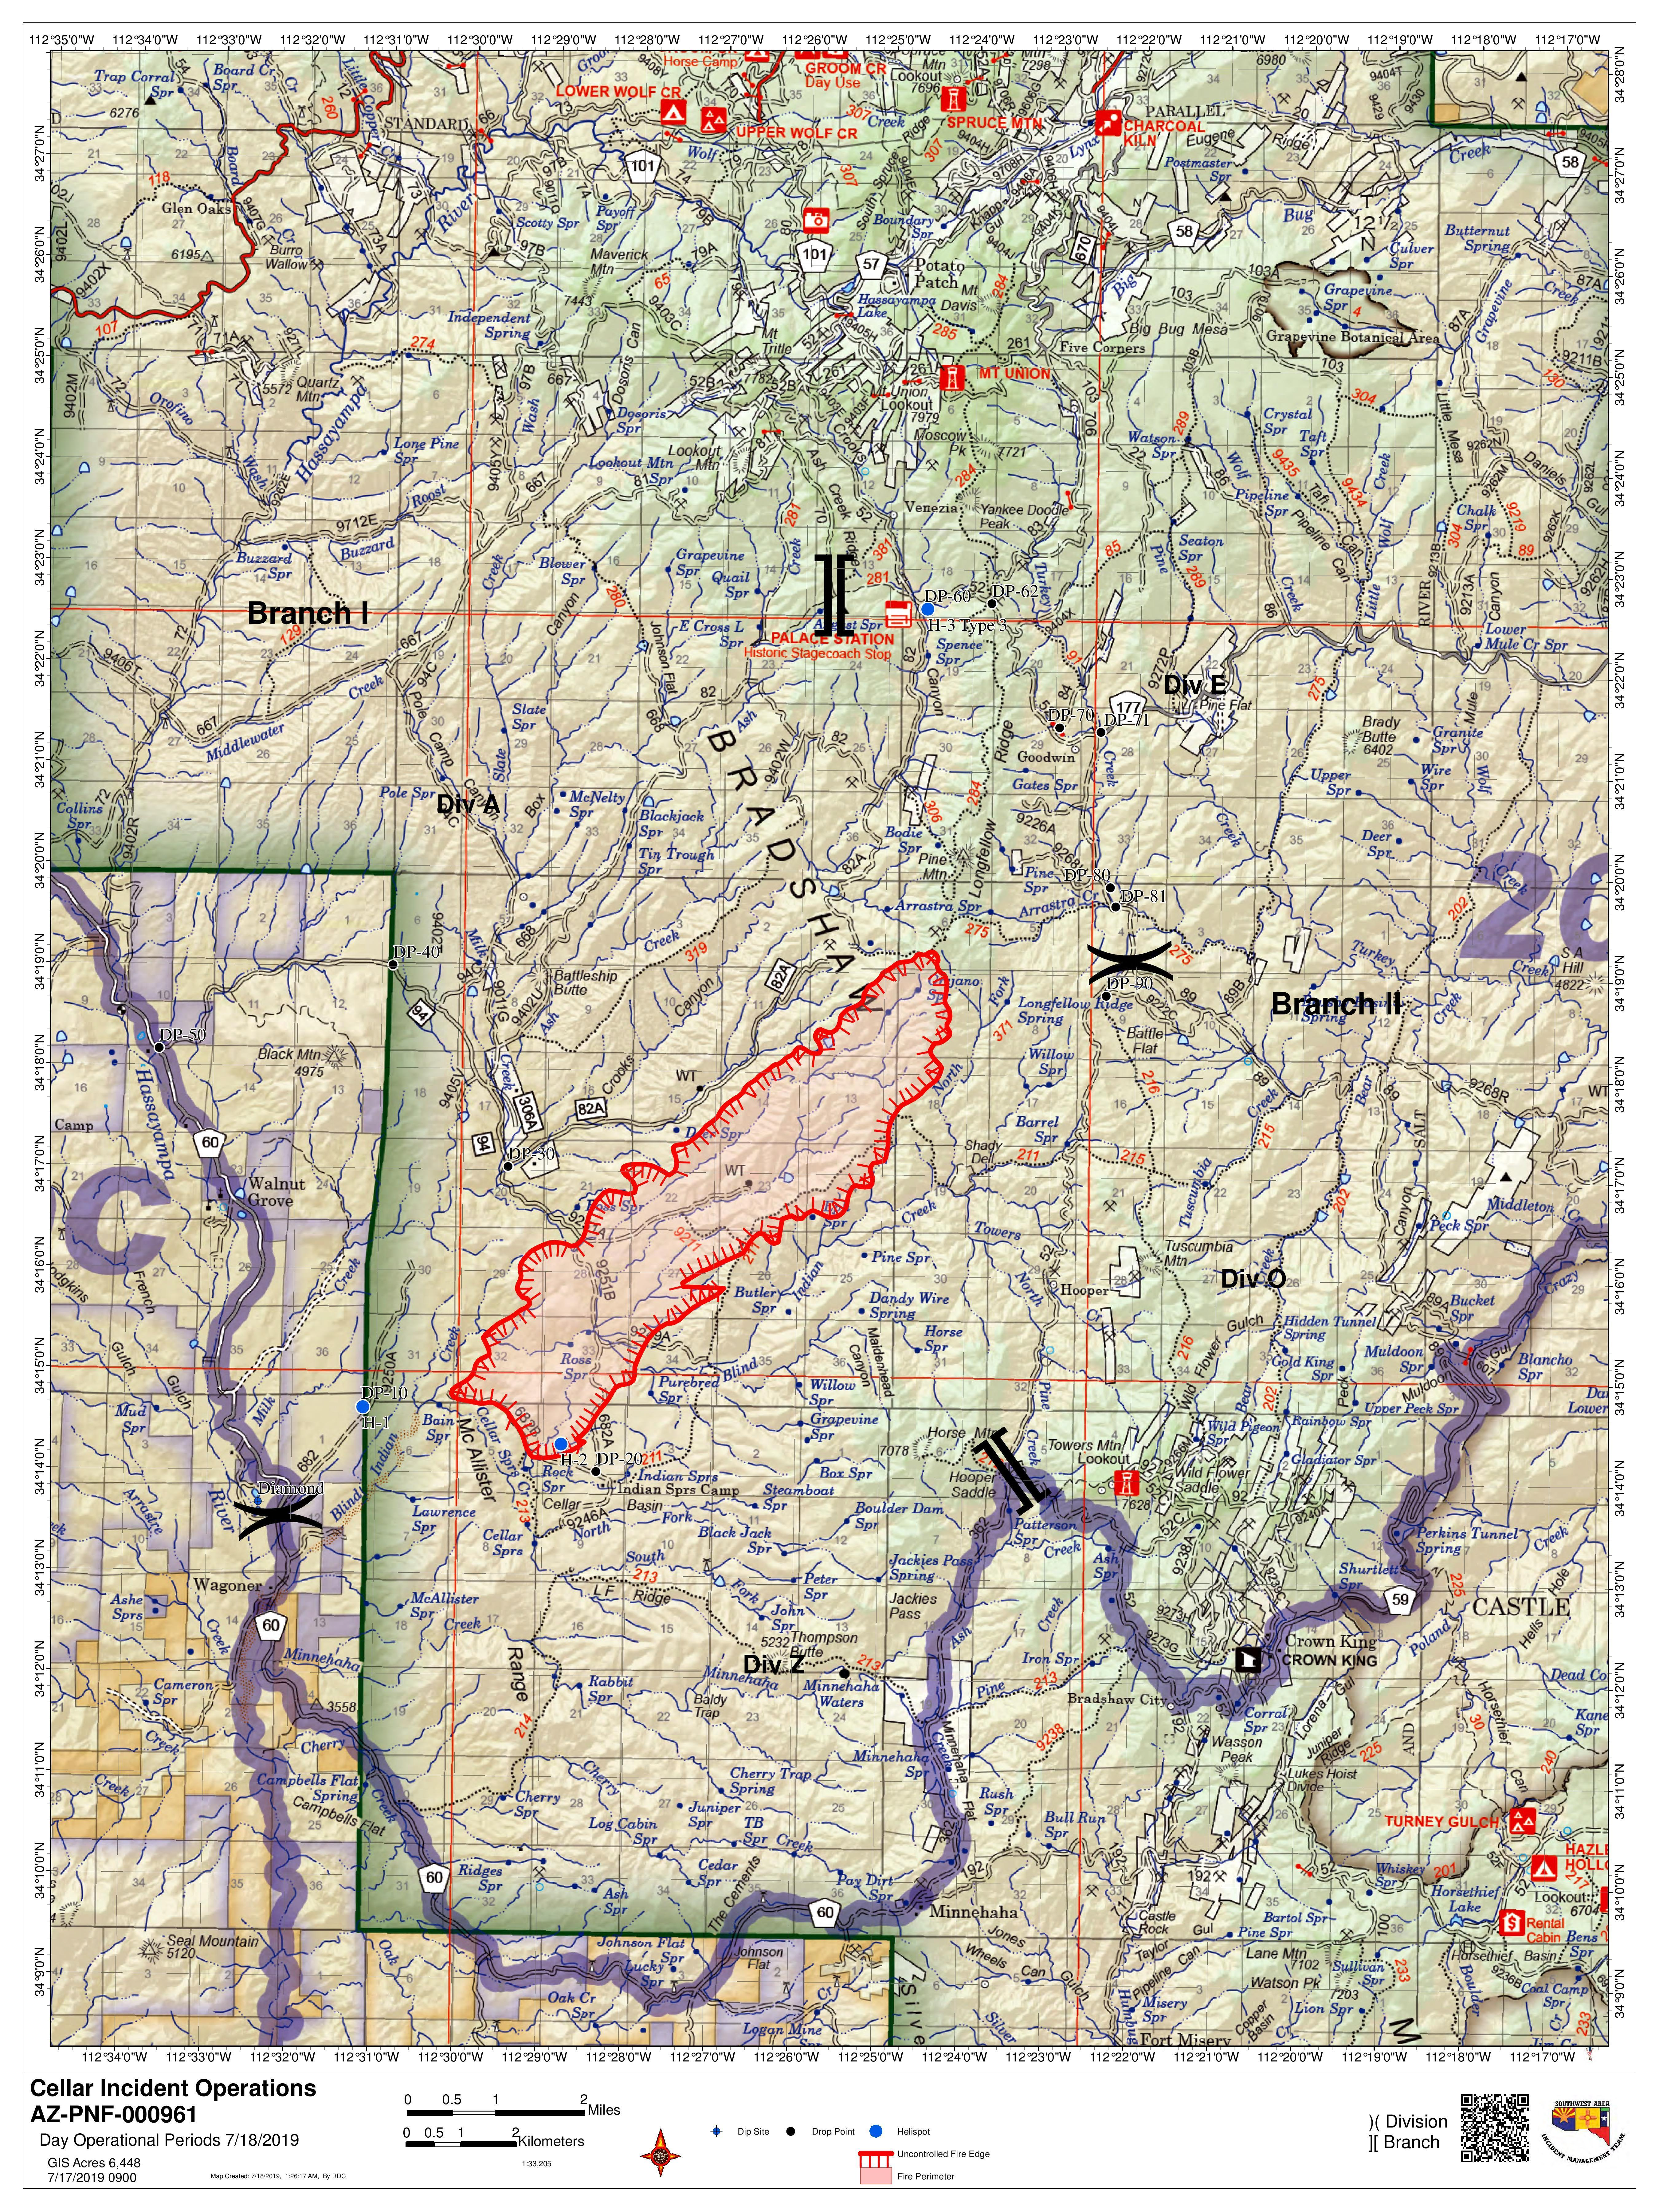 Operational briefing map for the Cellar Fire on Thursday, July 18, 2019